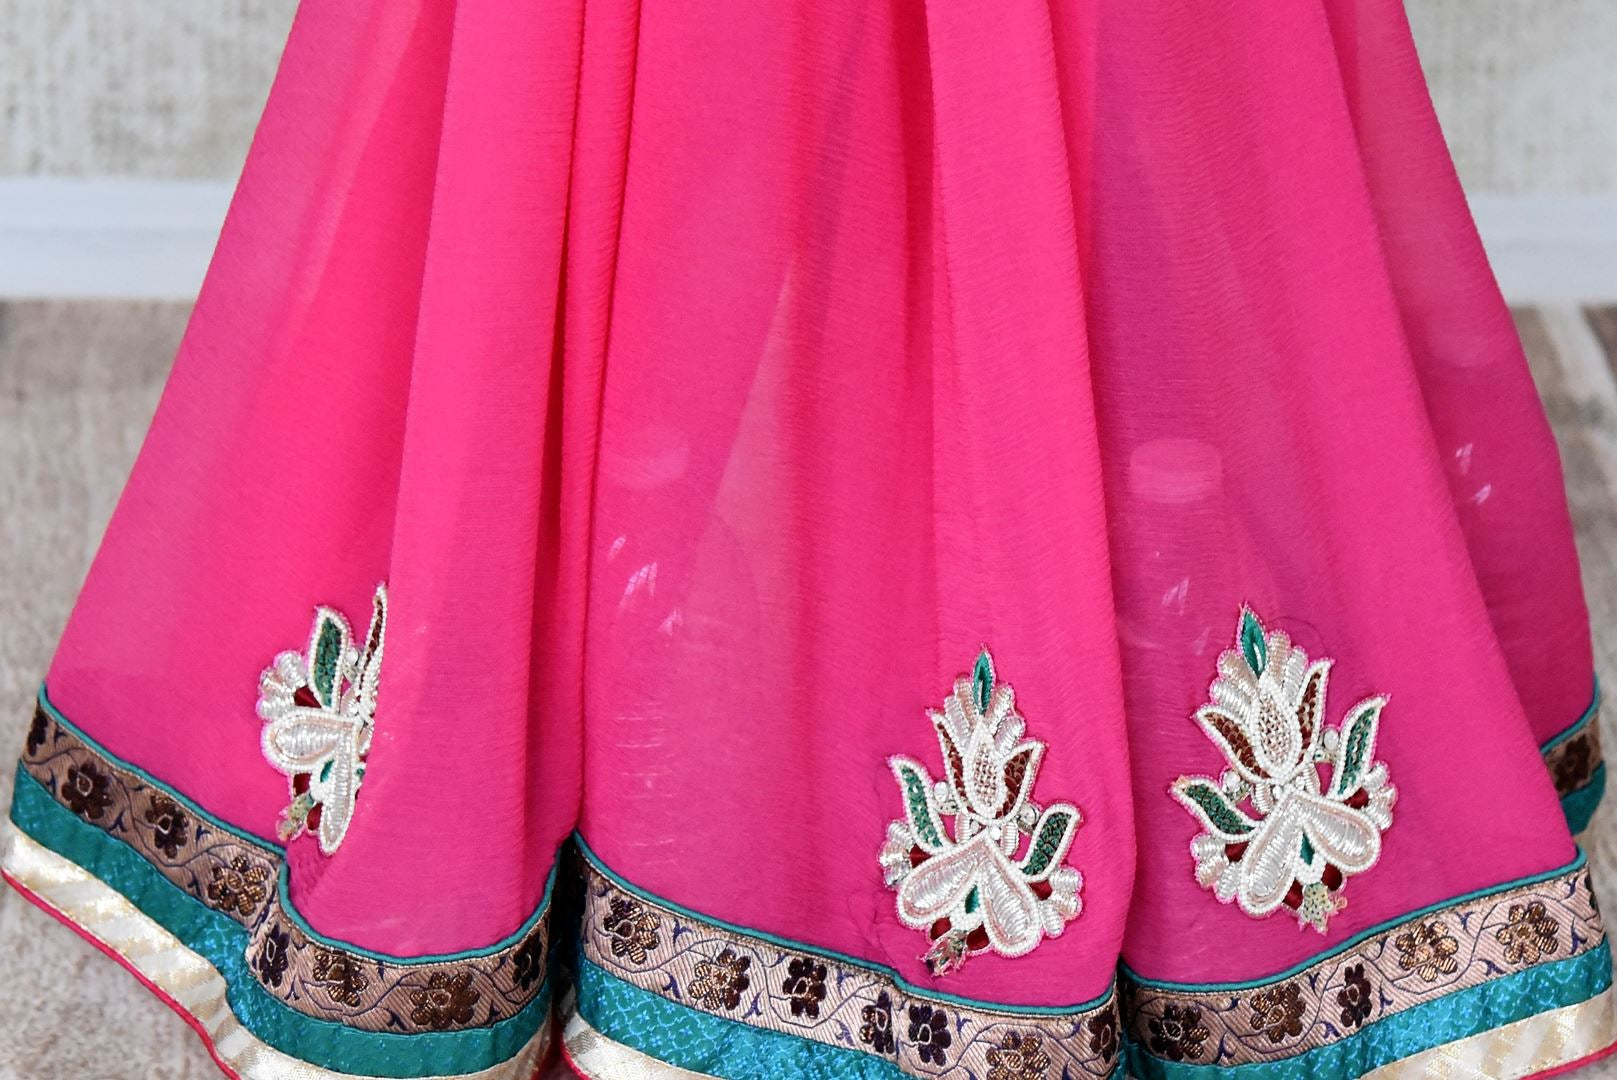 Buy pink embroidered fancy chiffon saree online in USA from Pure Elegance. Let your ethnic style be one of a kind with an exquisite variety of Indian handloom sarees, pure silk sarees, designer sarees from our exclusive fashion store in USA.-pleats